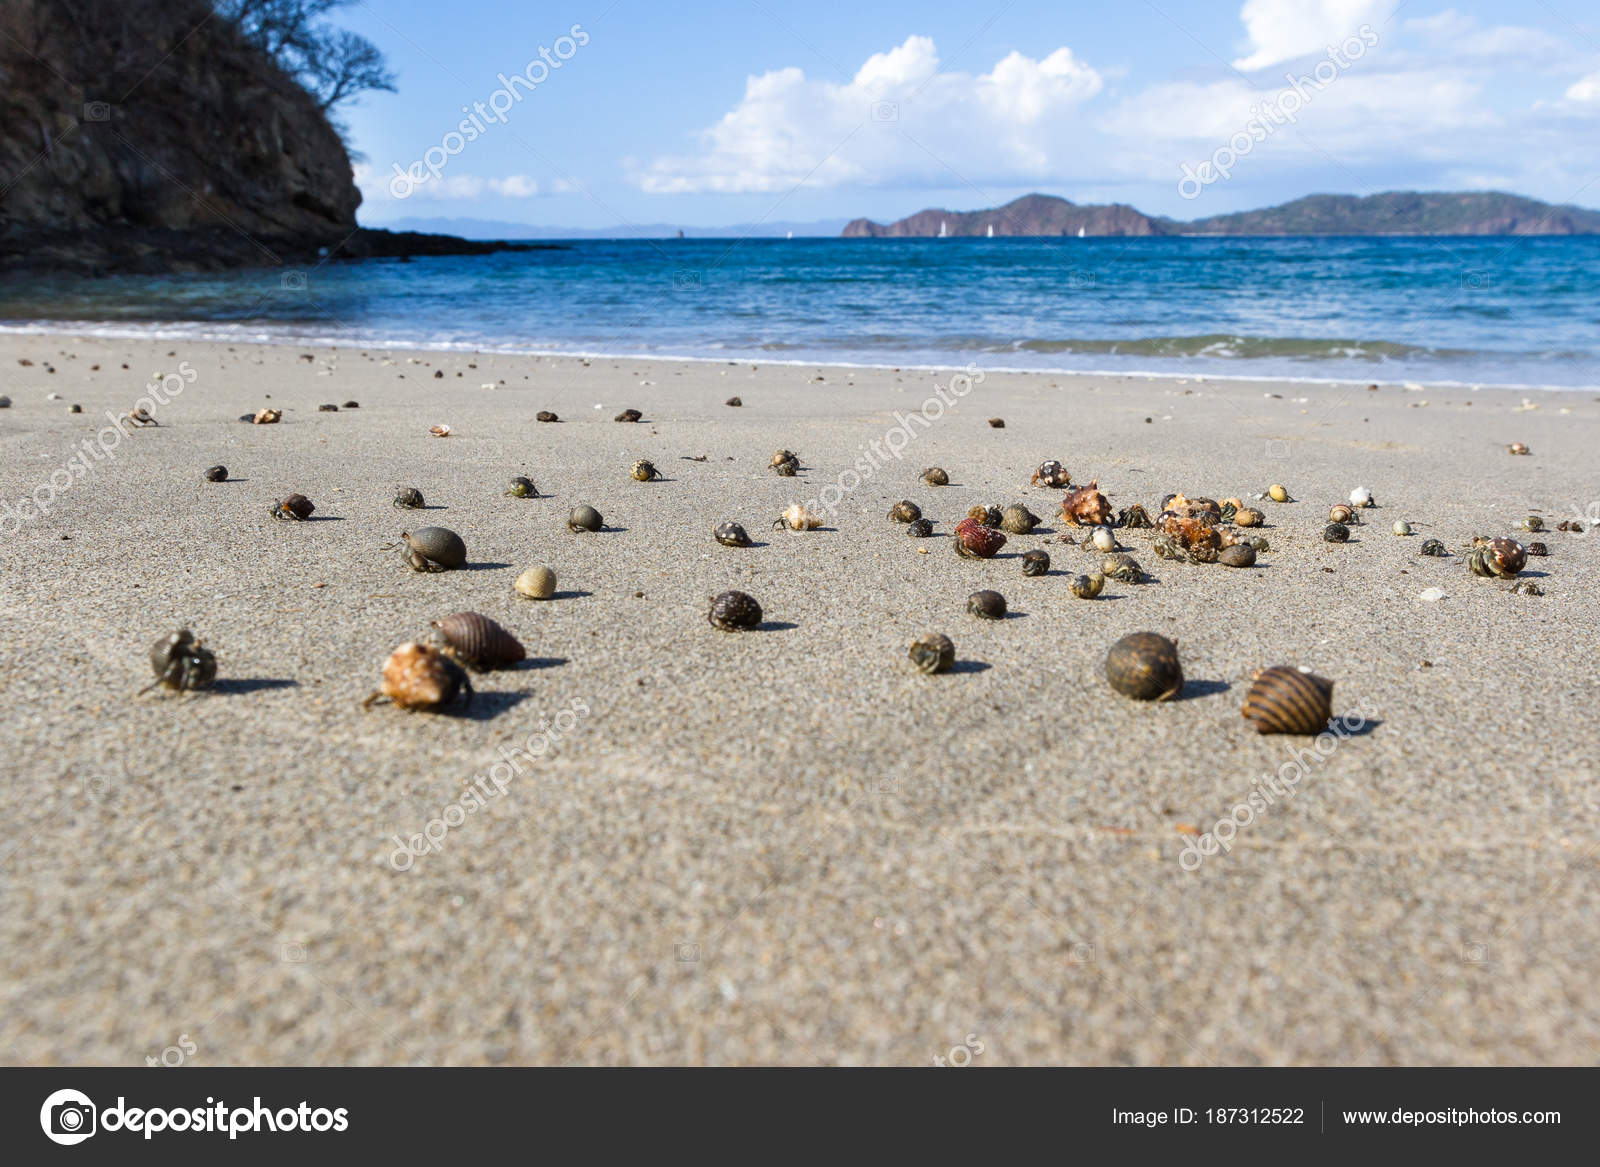 hermit crabs on the beach — Stock Photo © wollertz #187312522